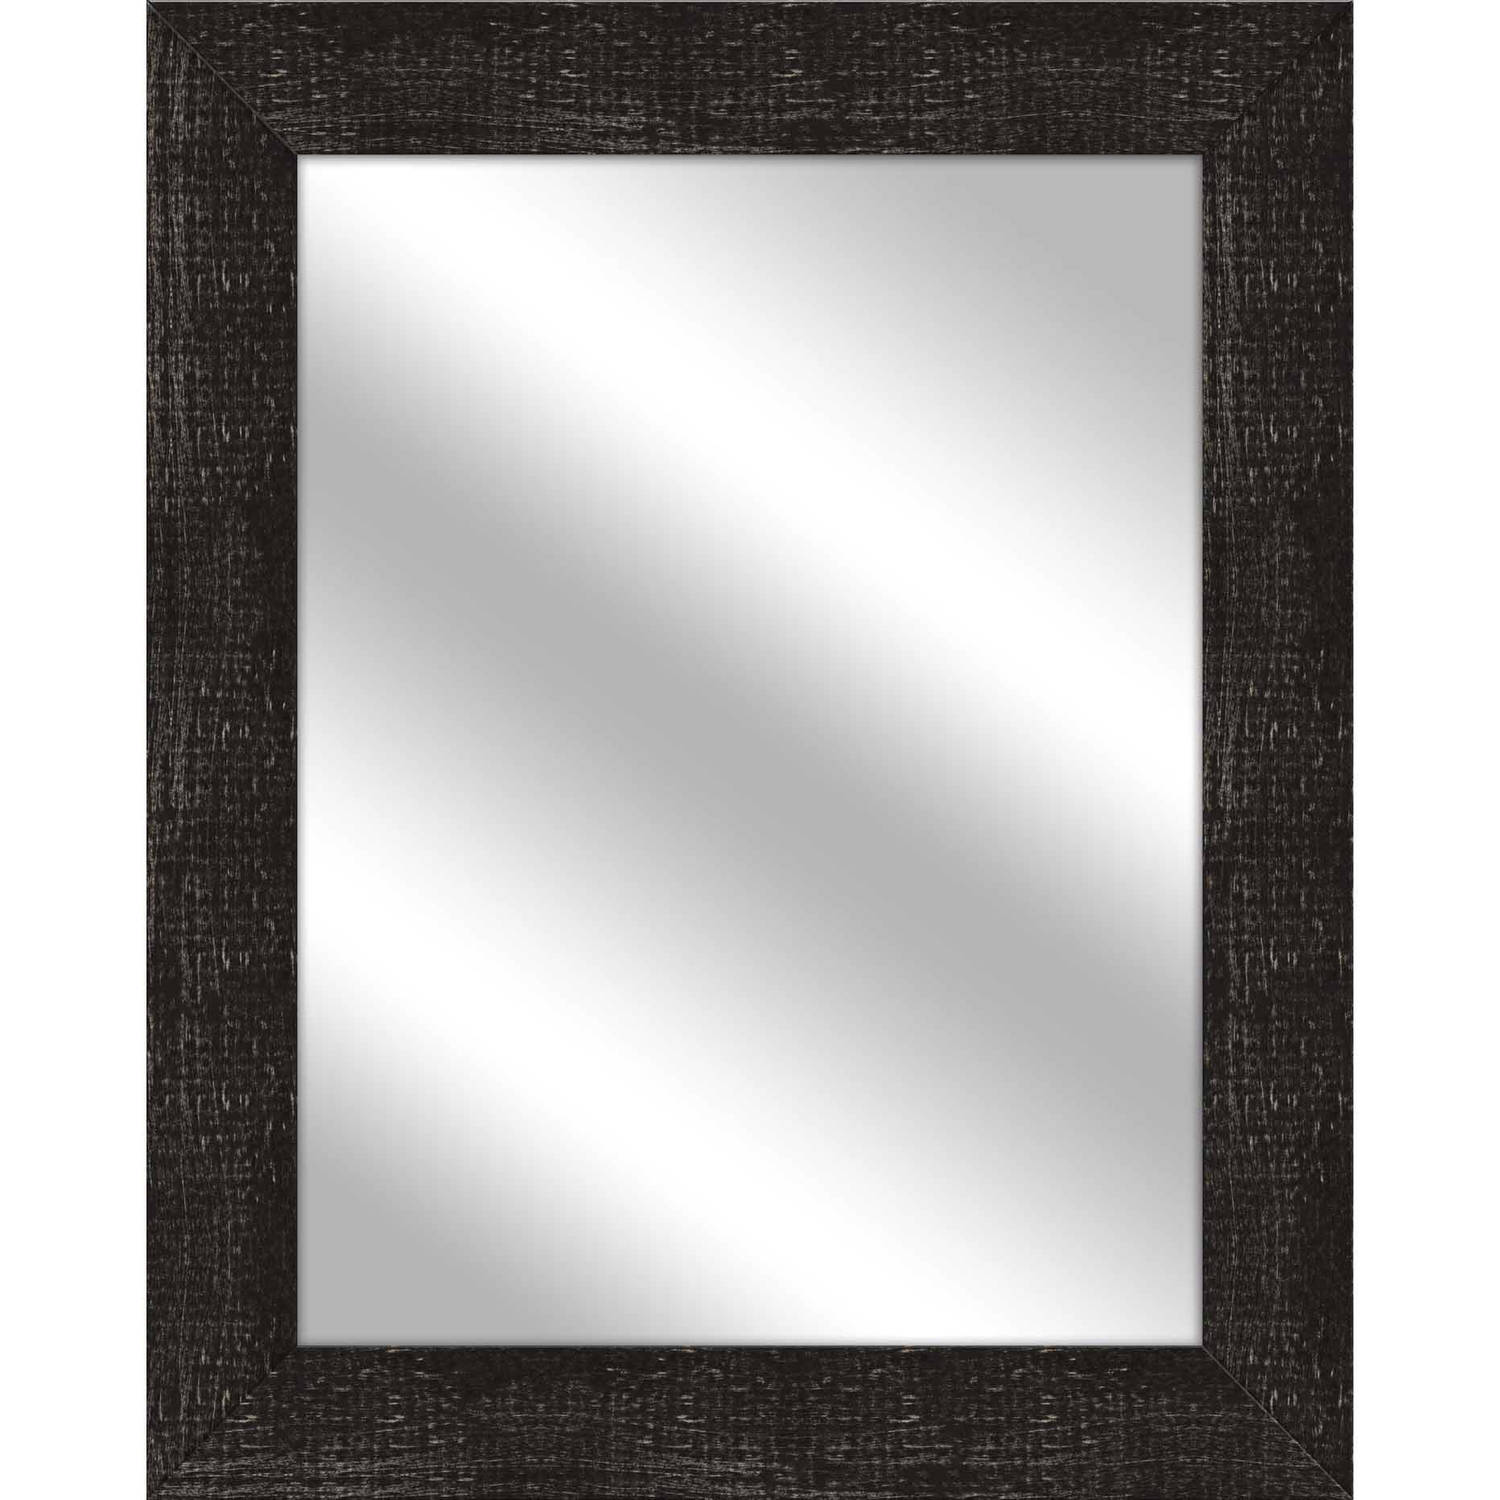 Vanity Mirror, Stone Gray, 25.5x31.5 by PTM Images